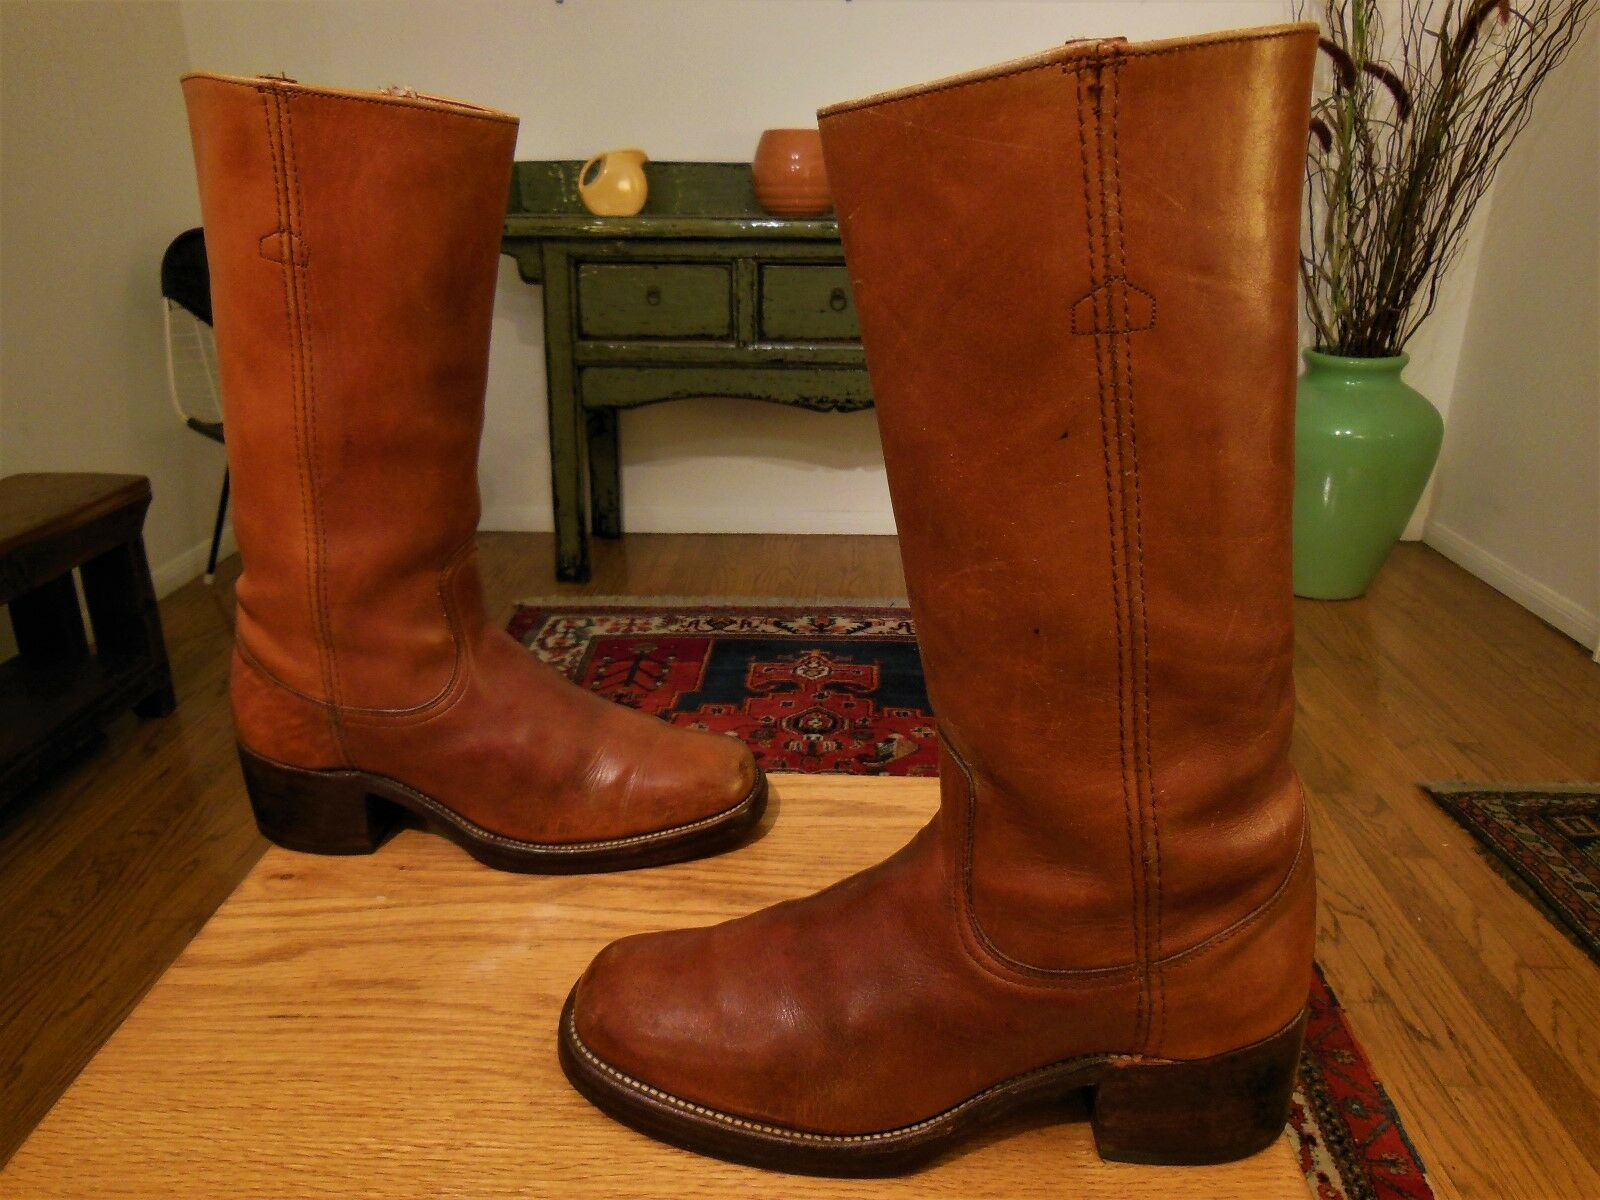 Vtg Men's FRYE 60s/70s Whiskey Brown Leather Campus Hippie Boots 9.5B USA!